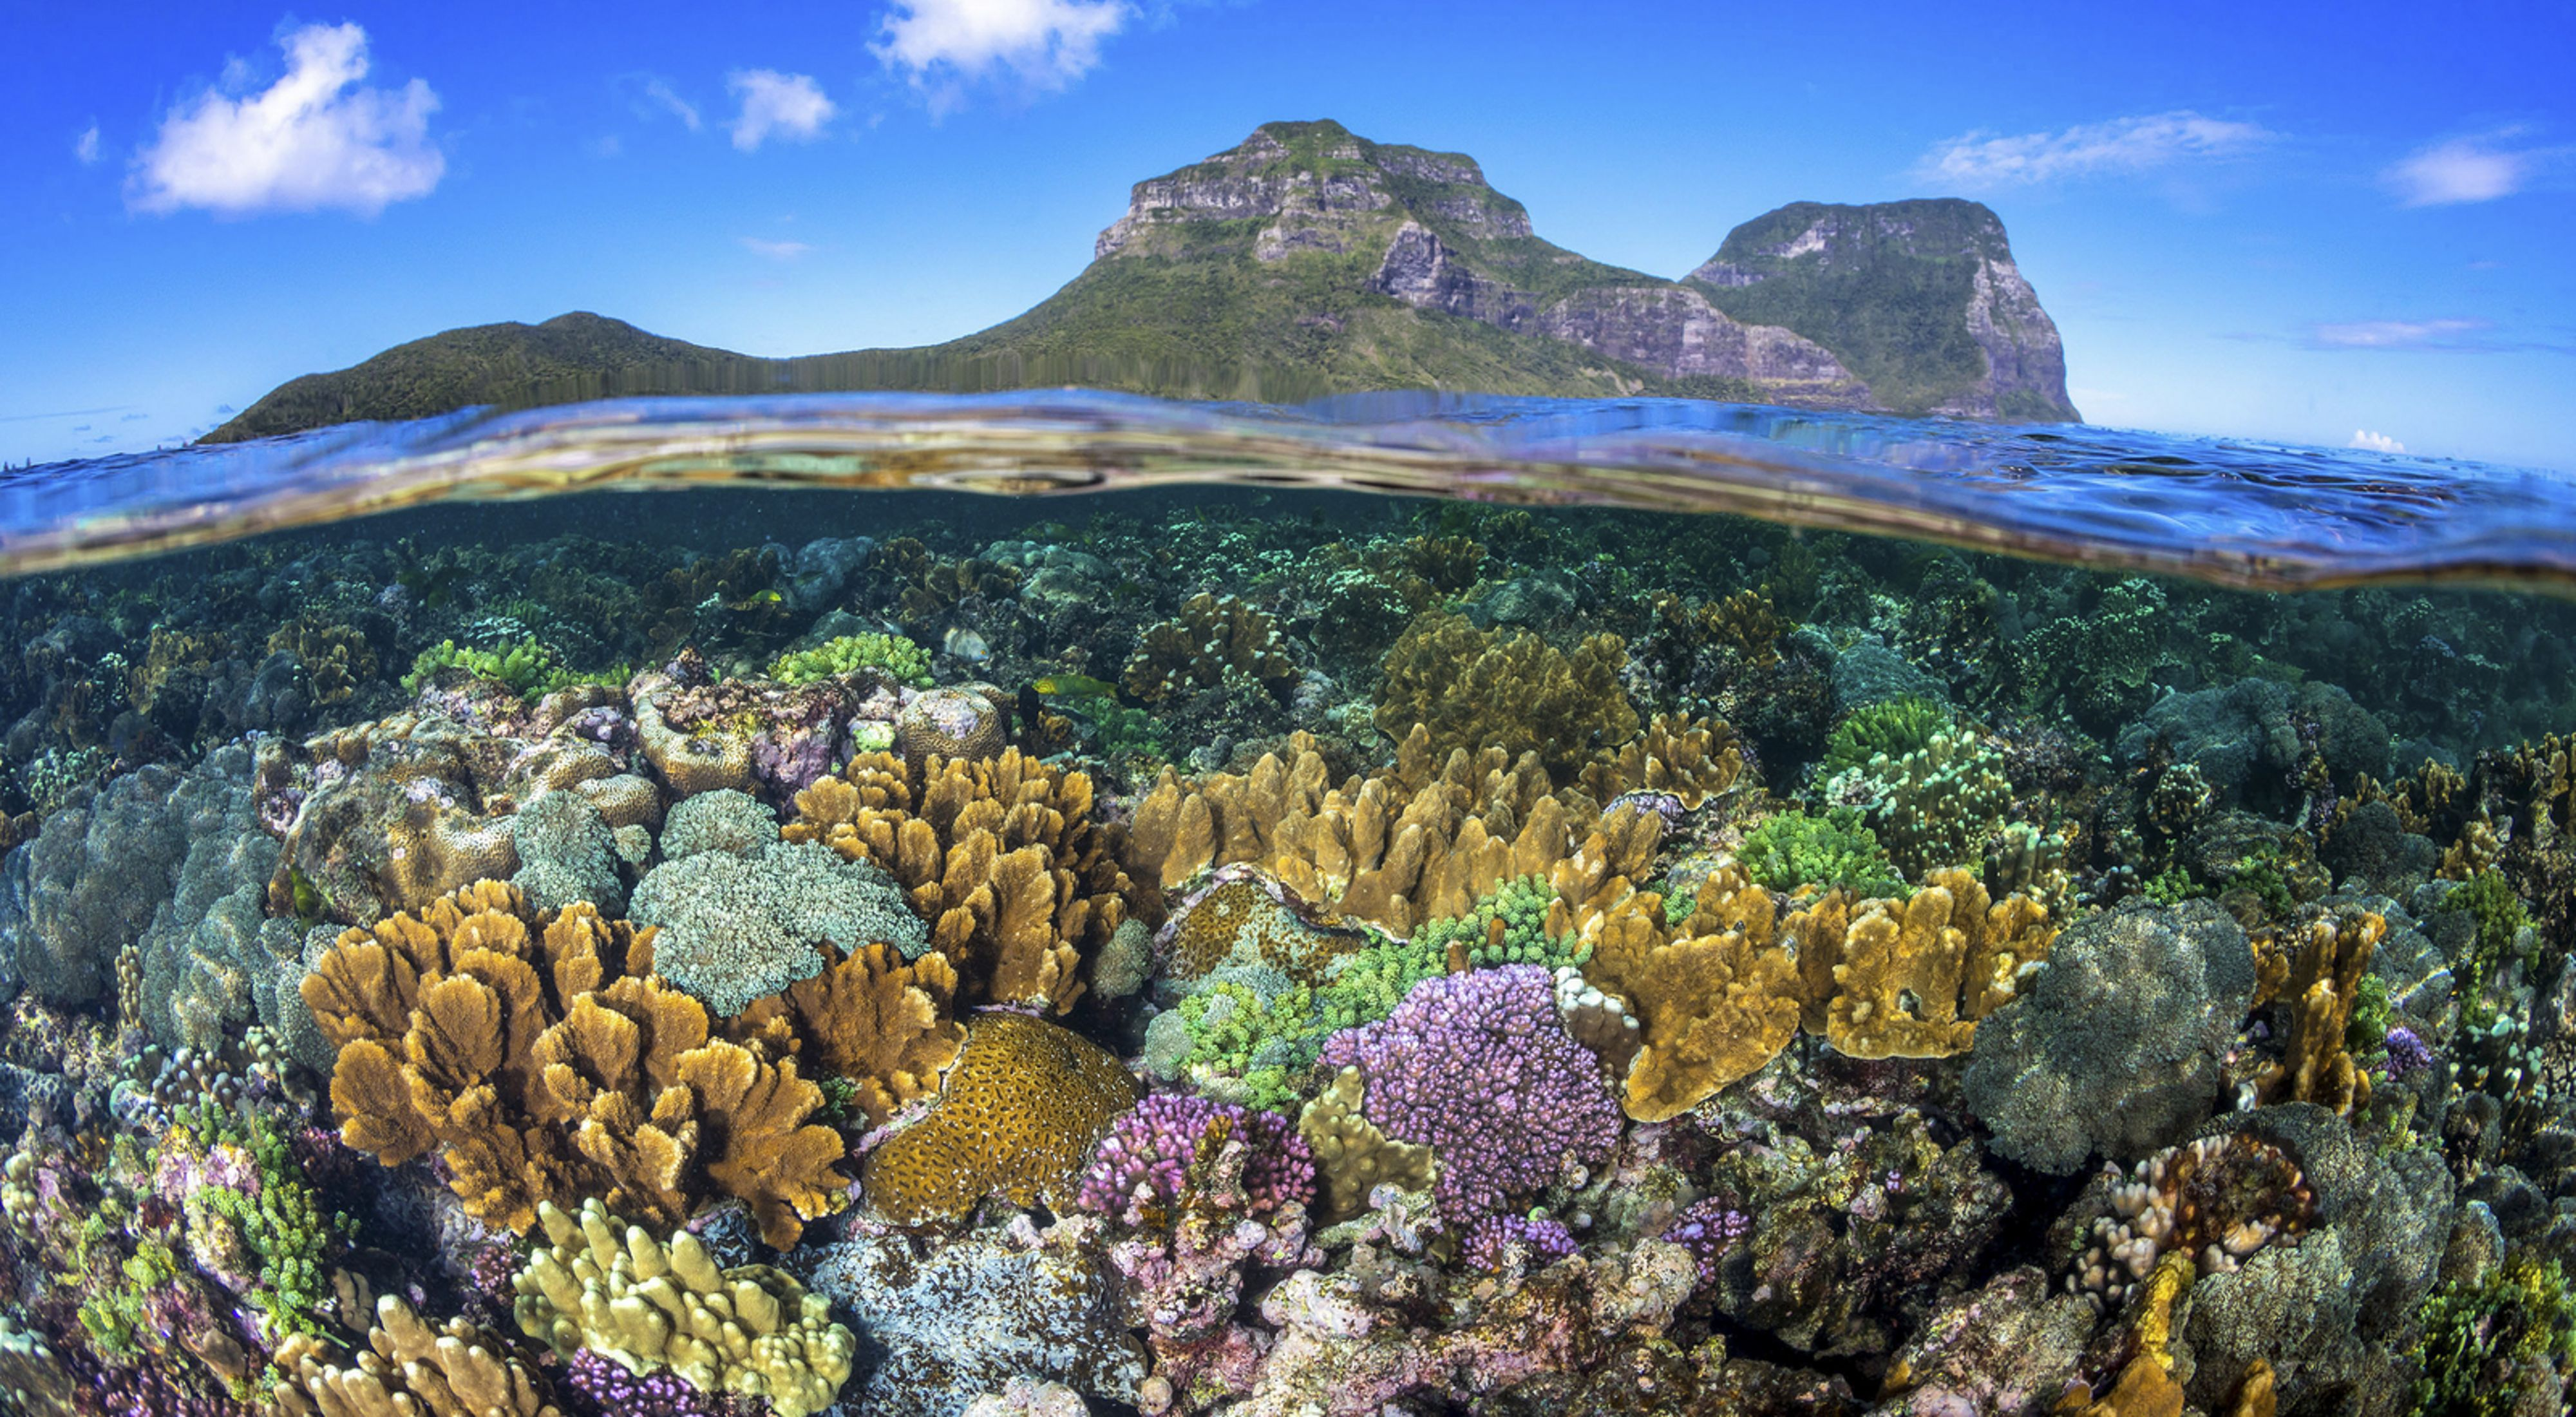 Coral reefs provide important benefits to near-shore systems.